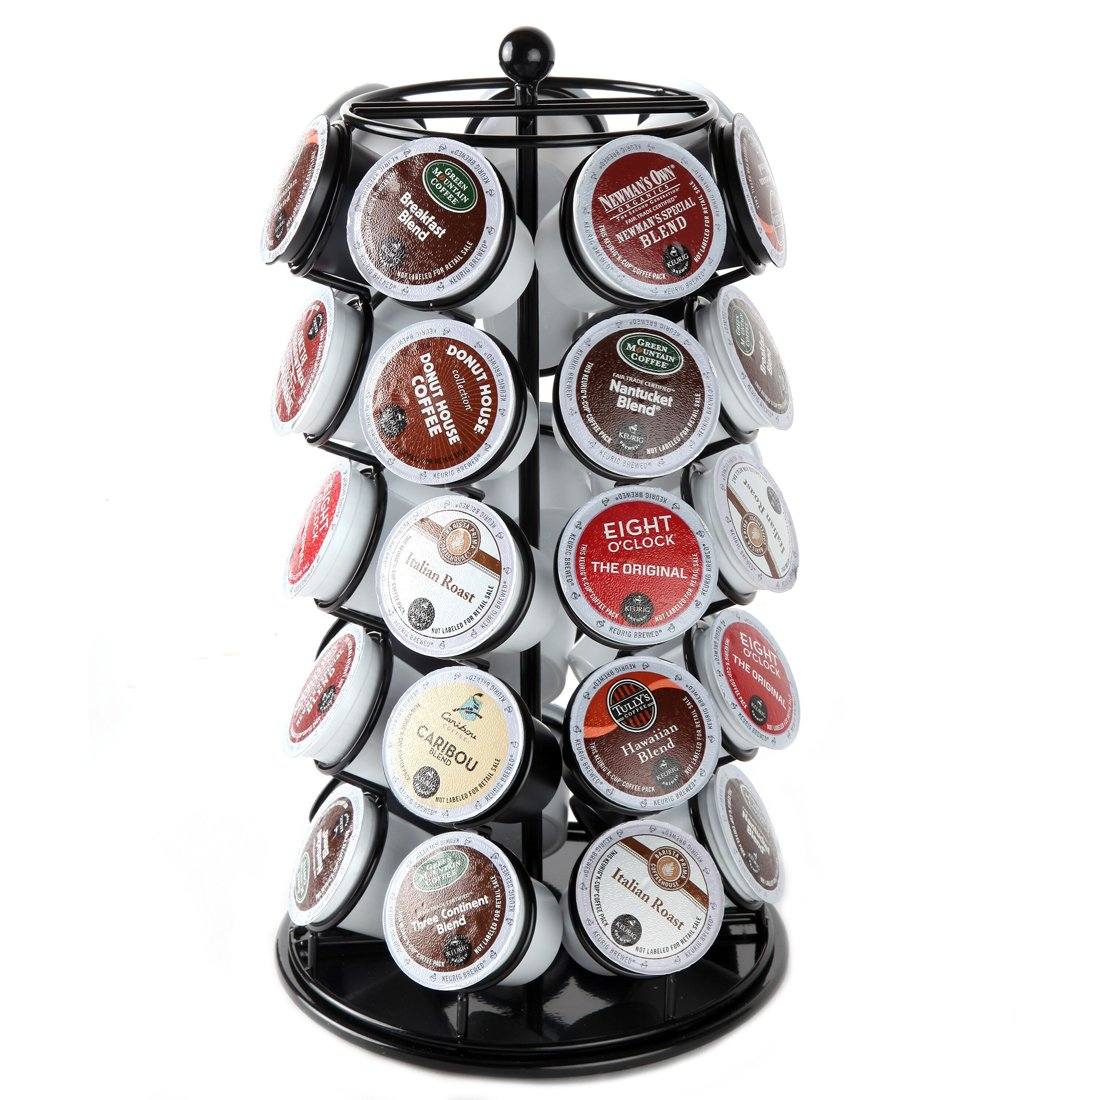 Lily's Home K Cup Holder Carousel for 35 K-Cups in Black. K Cup Storage in Style Lily's Home SW889-BK